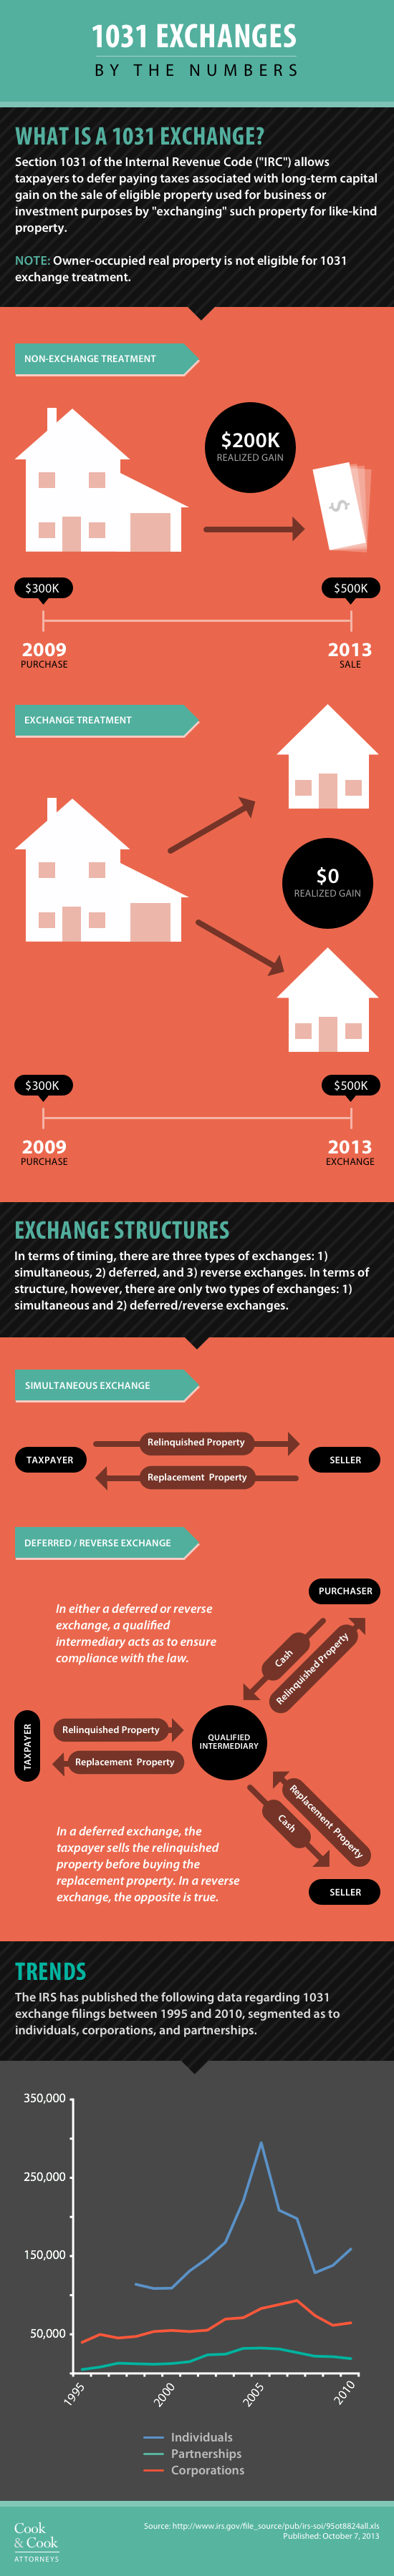 1031-exchanges-by-the-numbers_525b900c10649